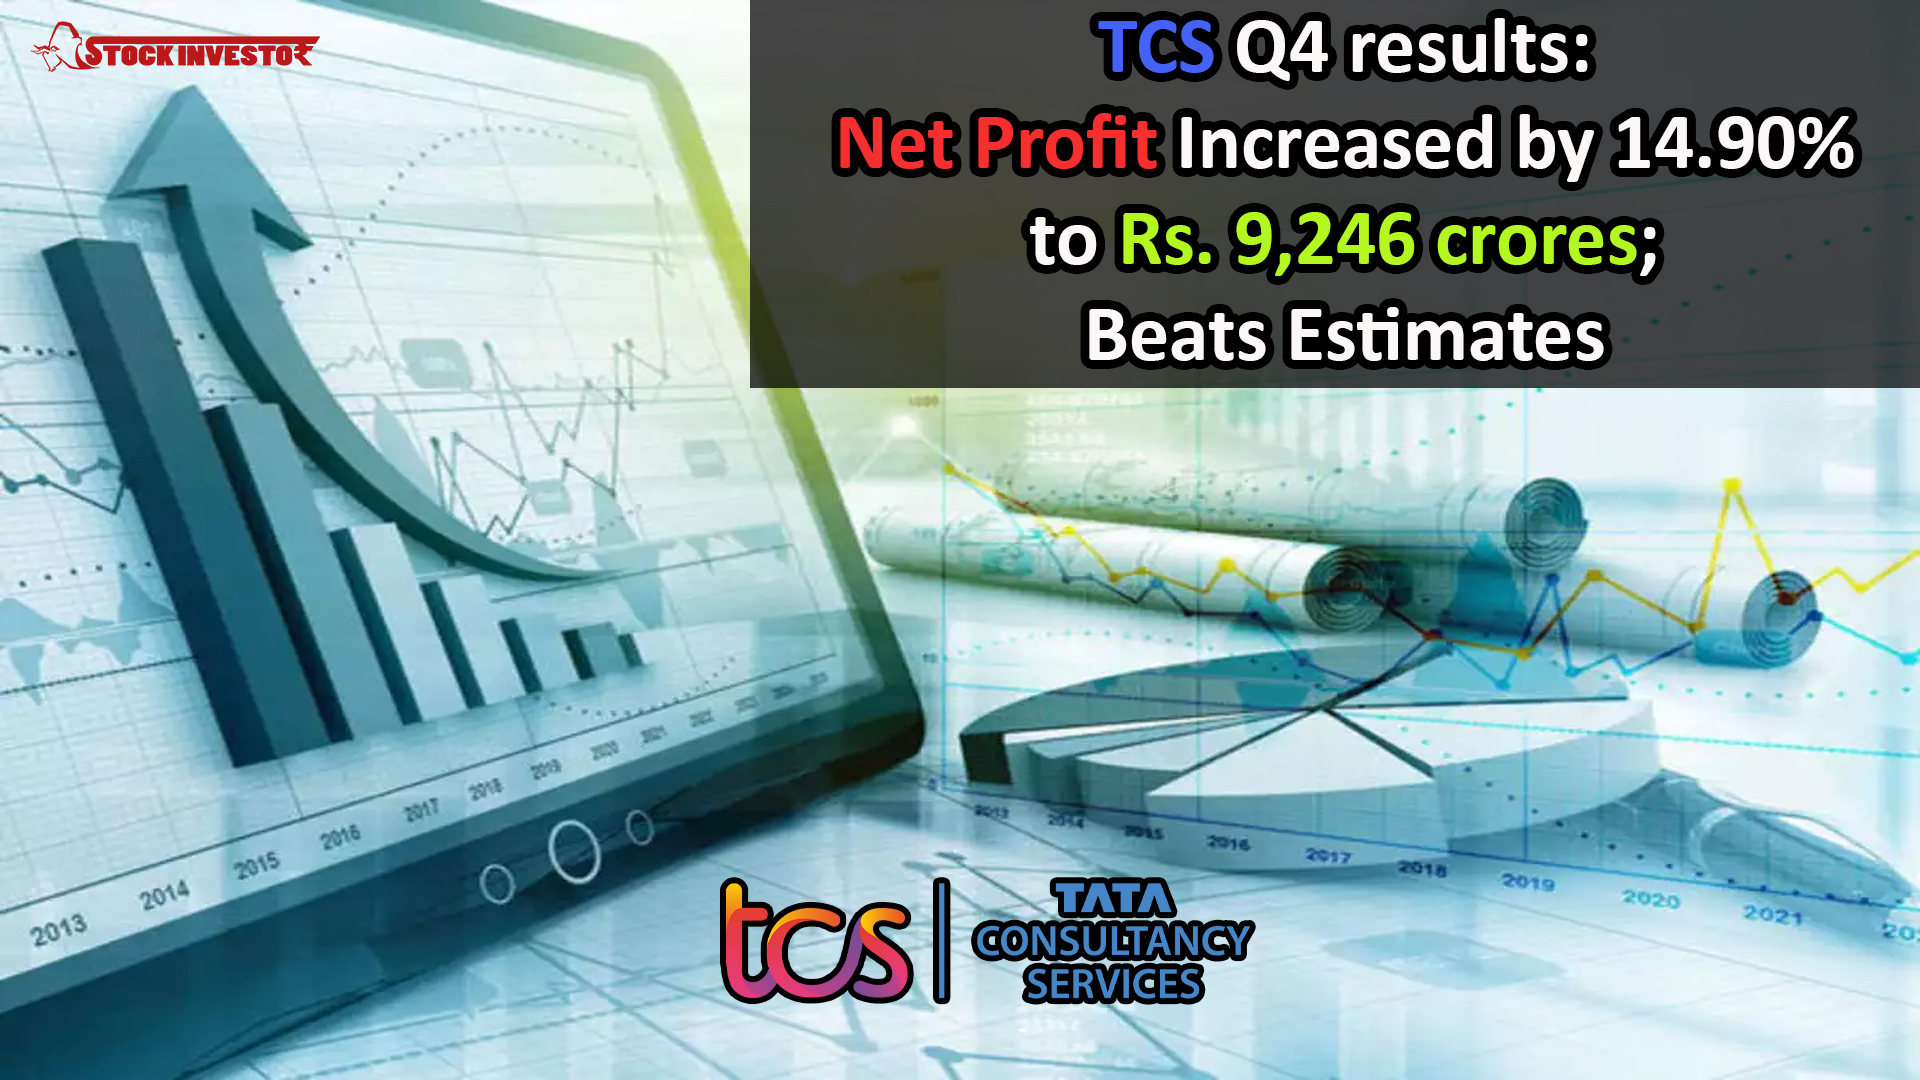 TCS Q4 results: Net Profit Increased by 14.90% to Rs. 9,246 crores; Beats Estimates